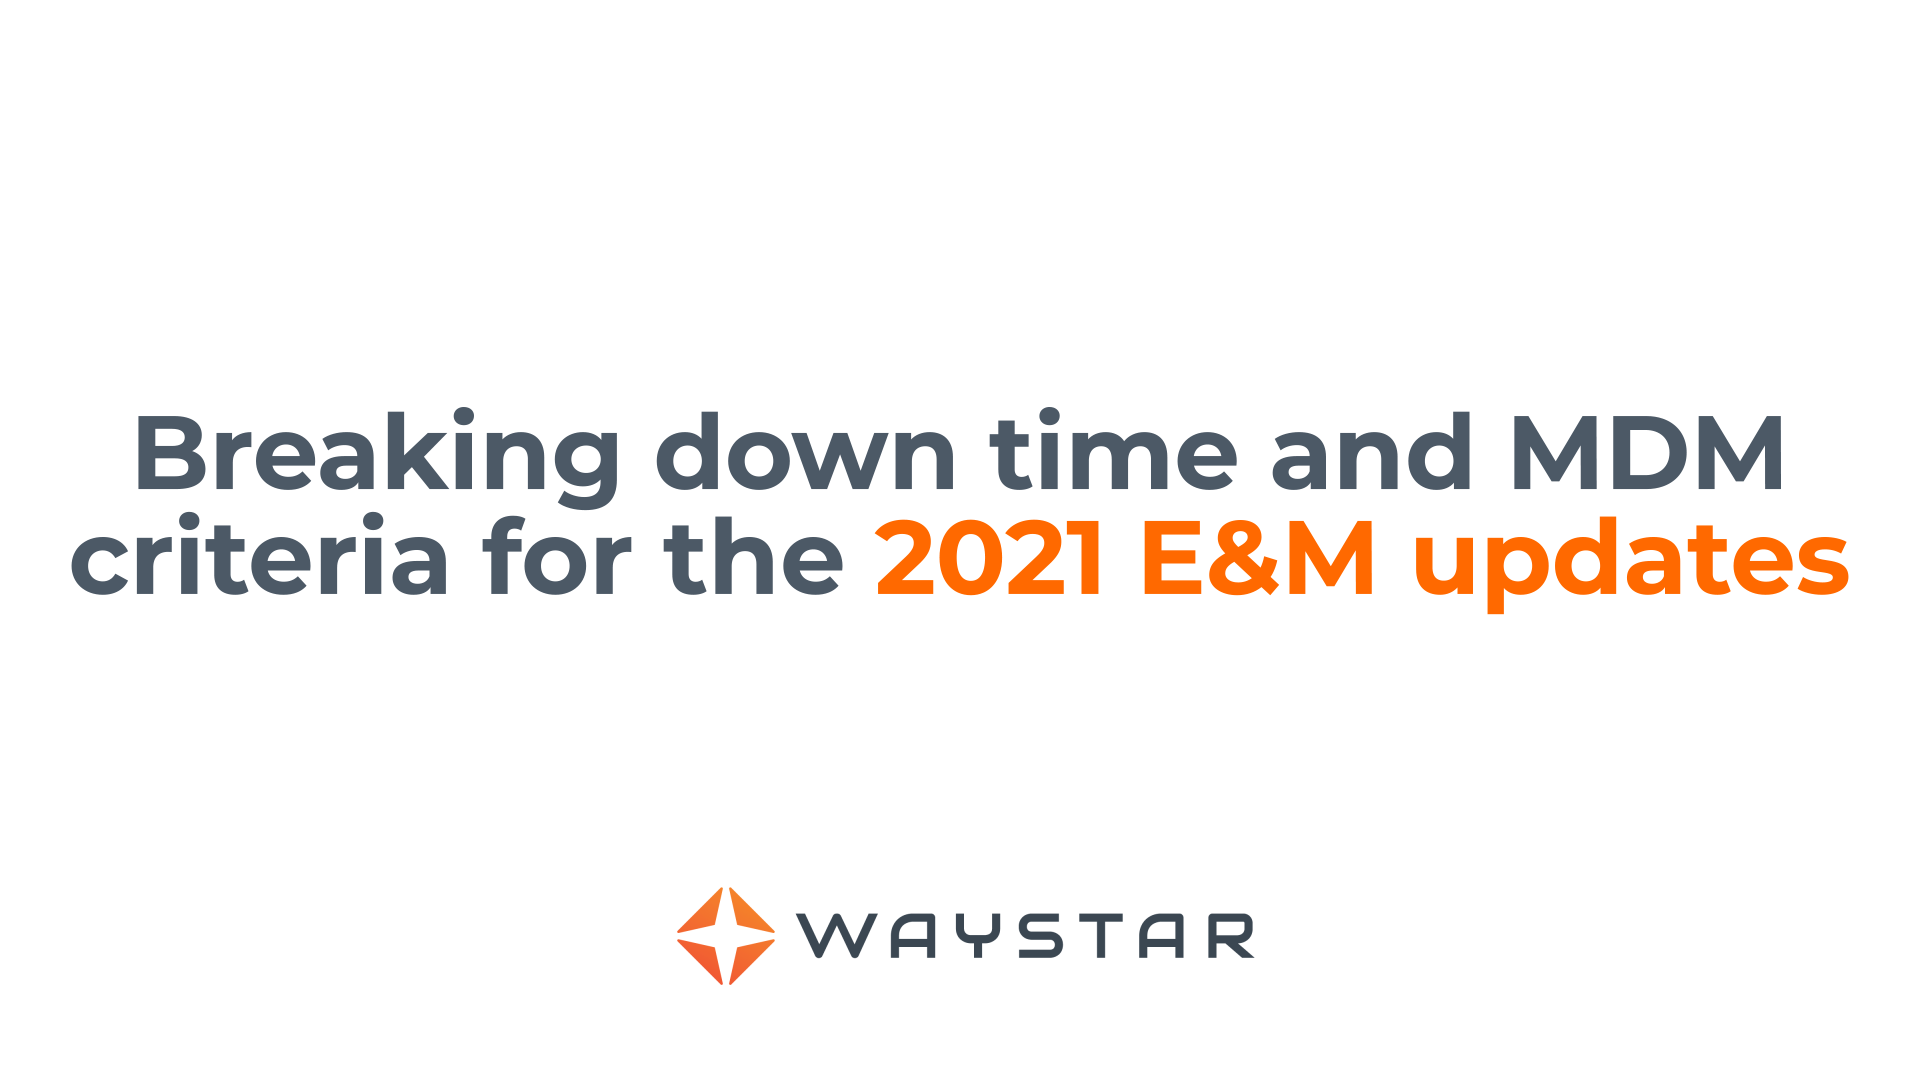 Breaking down time and MDM criteria for the 2021 E&M updates